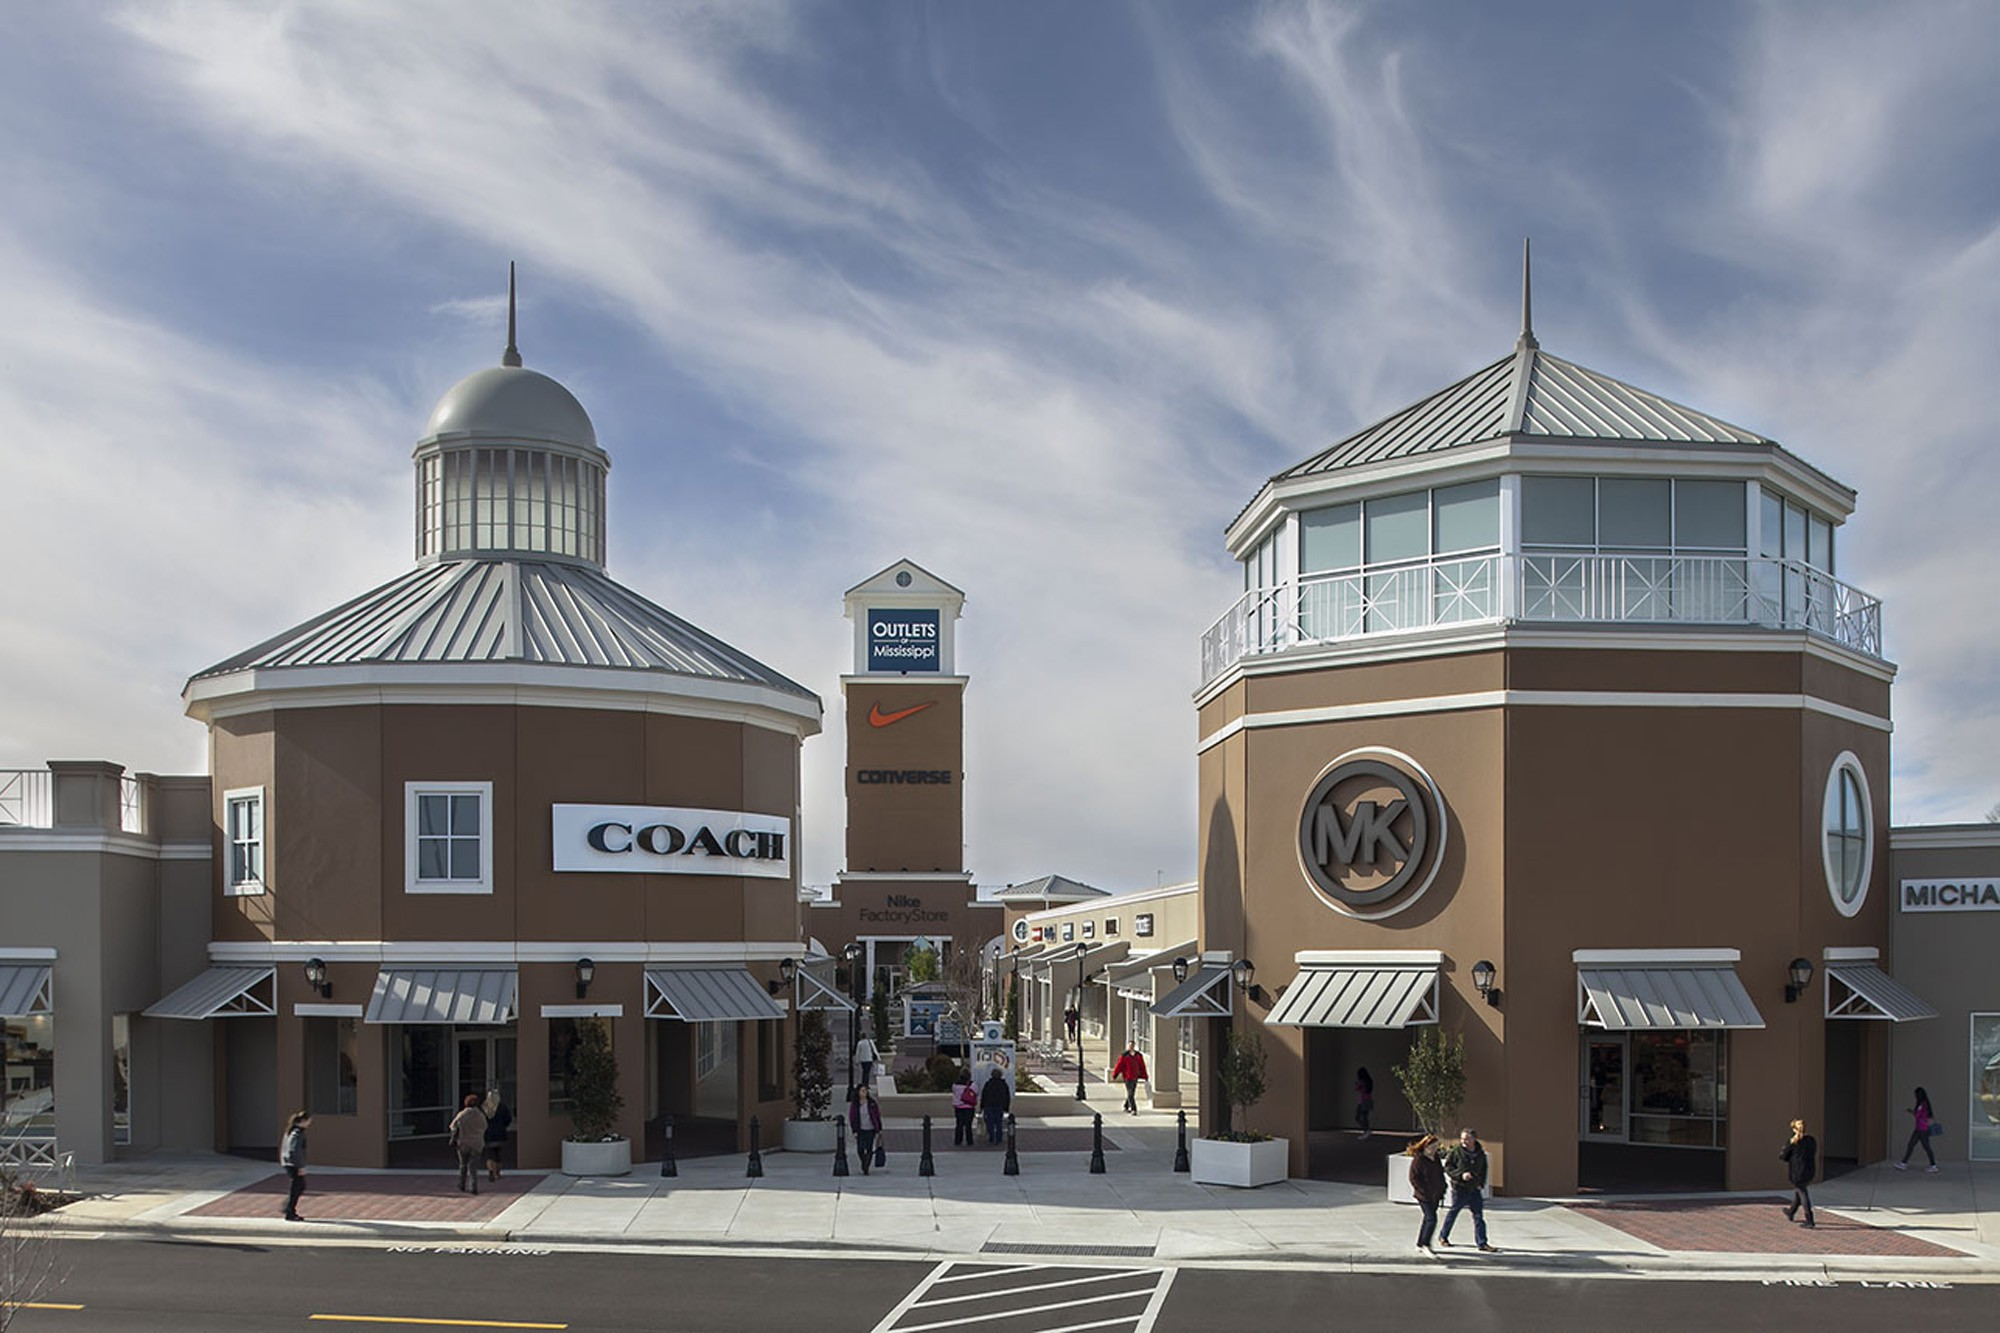 Jackson outlet mall locations. Directory of outlet malls nearby Jackson,MS. Top Jackson outlet malls. Find and choose outlet center on the list below to view shopping mall hours, contact, map, direction, stores and store hours.